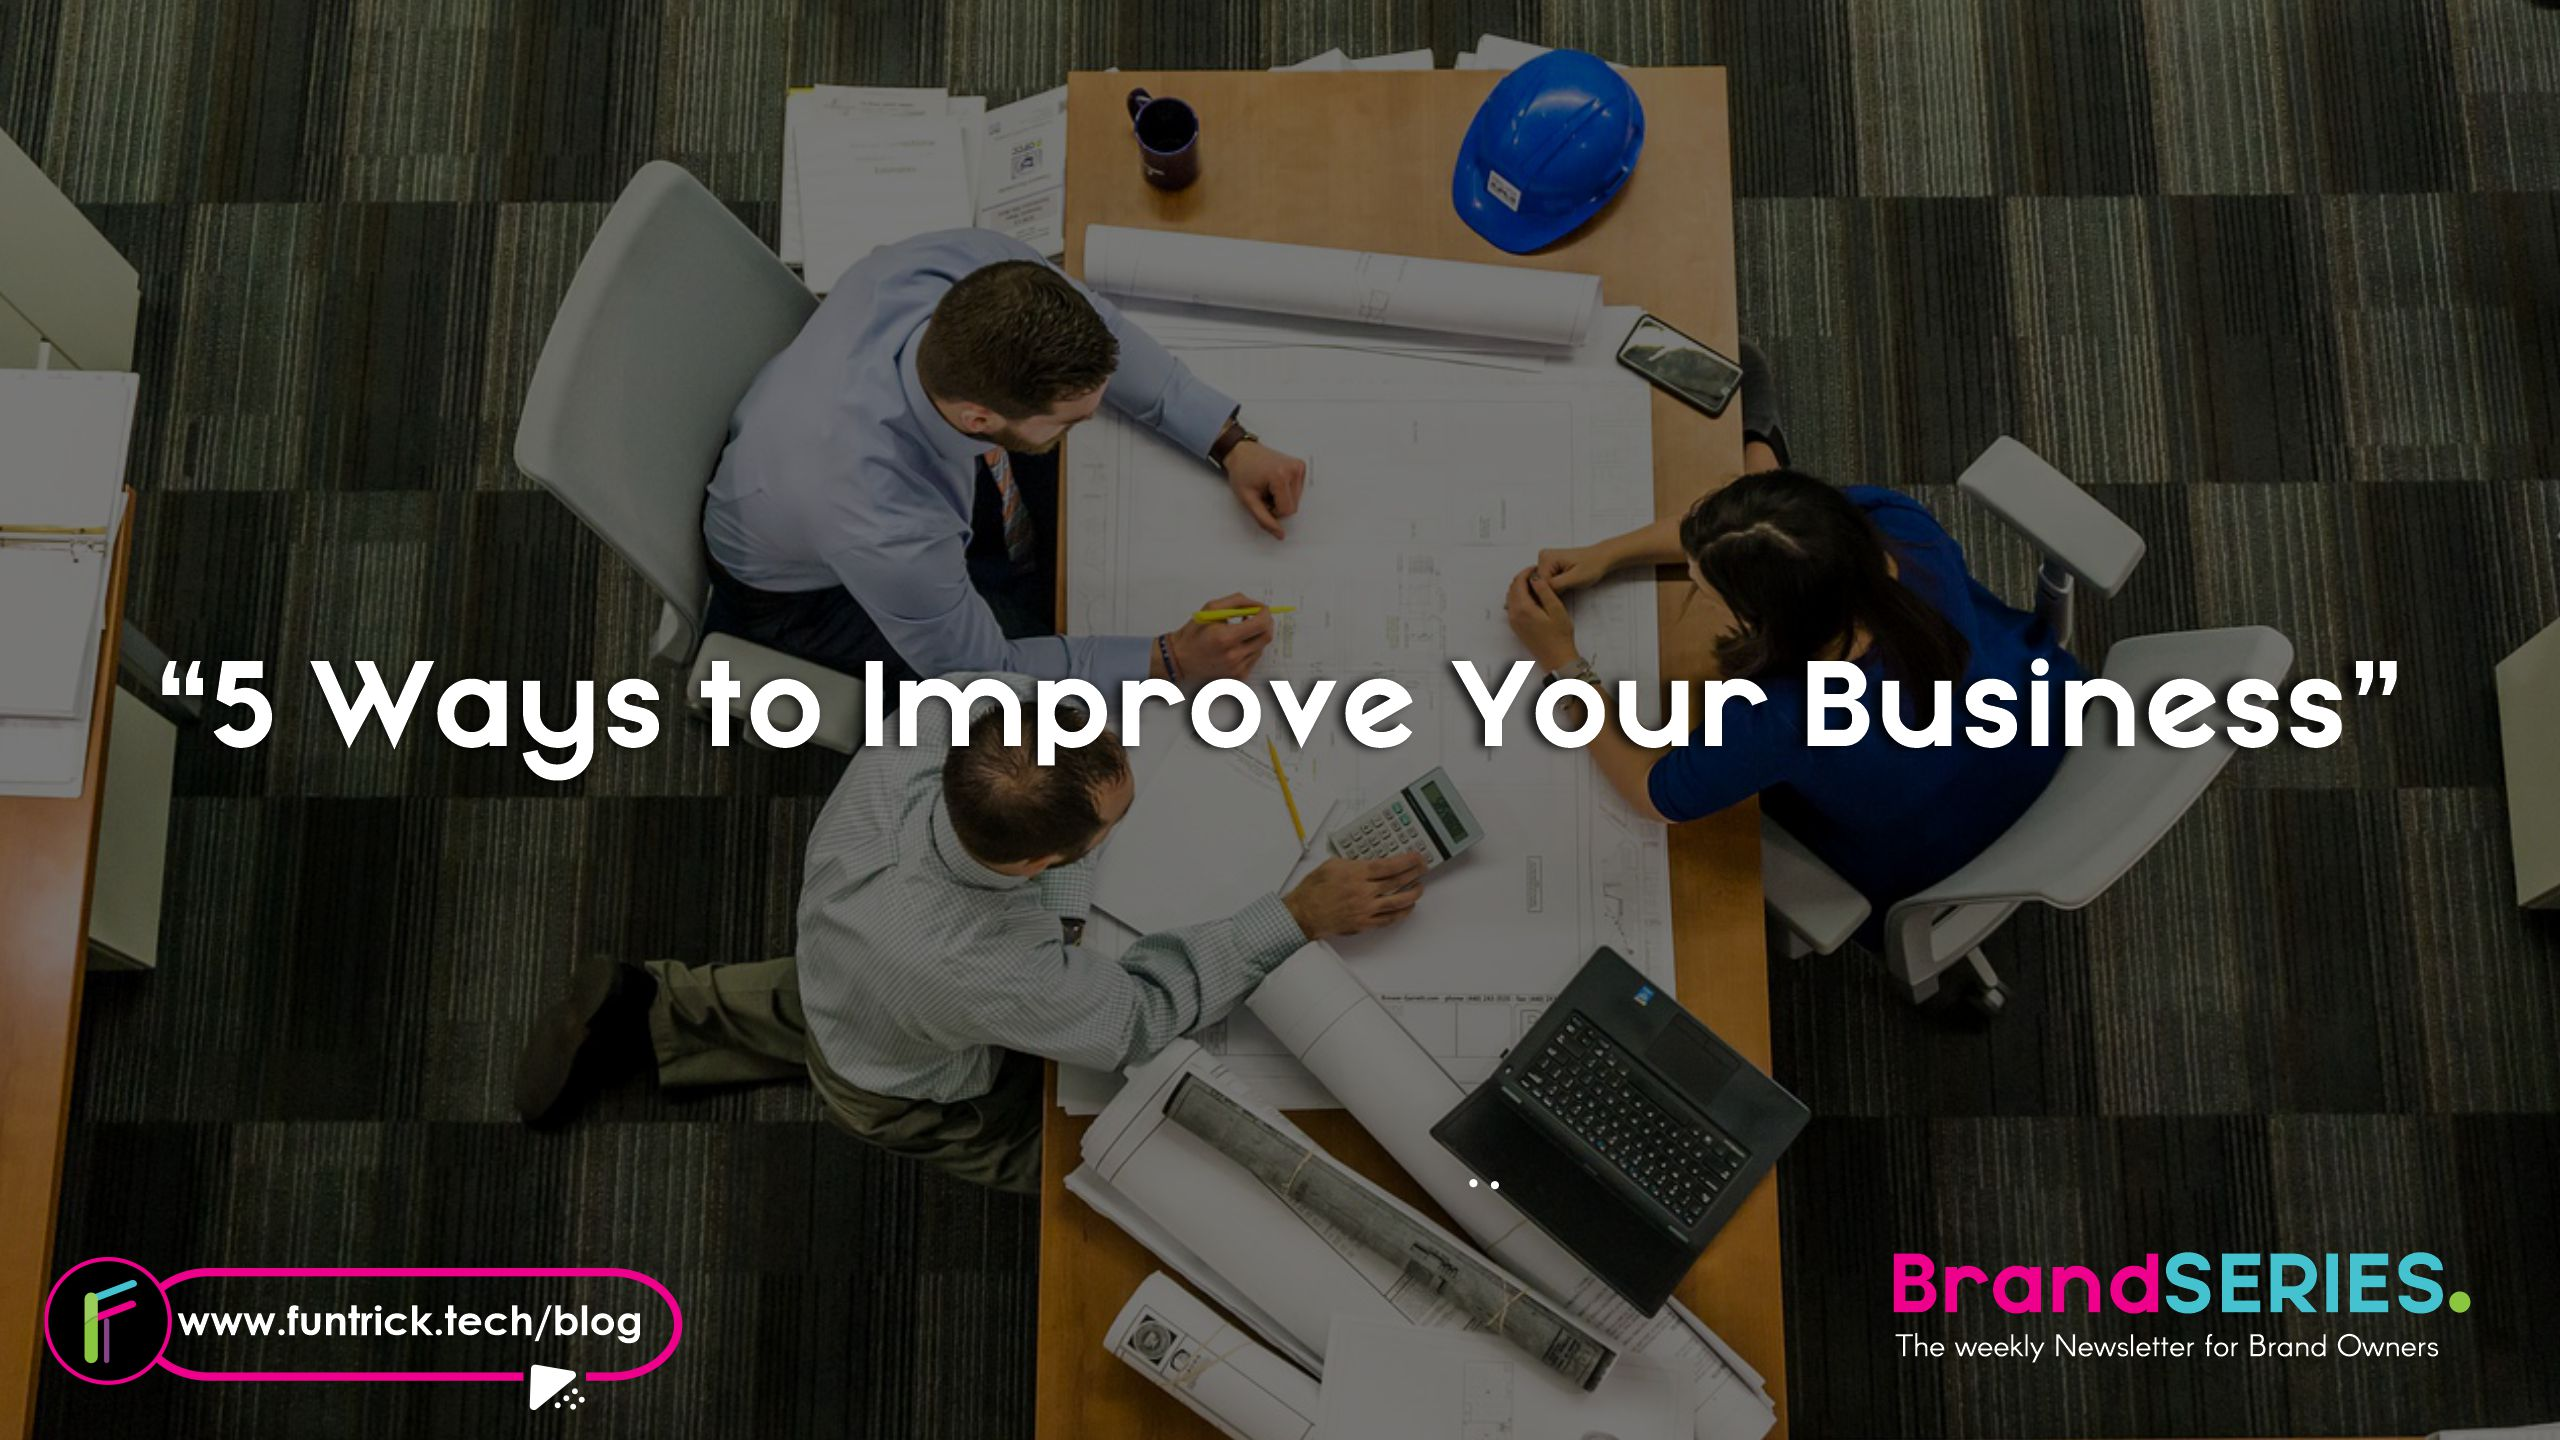 5 Ways to Improve Your Business